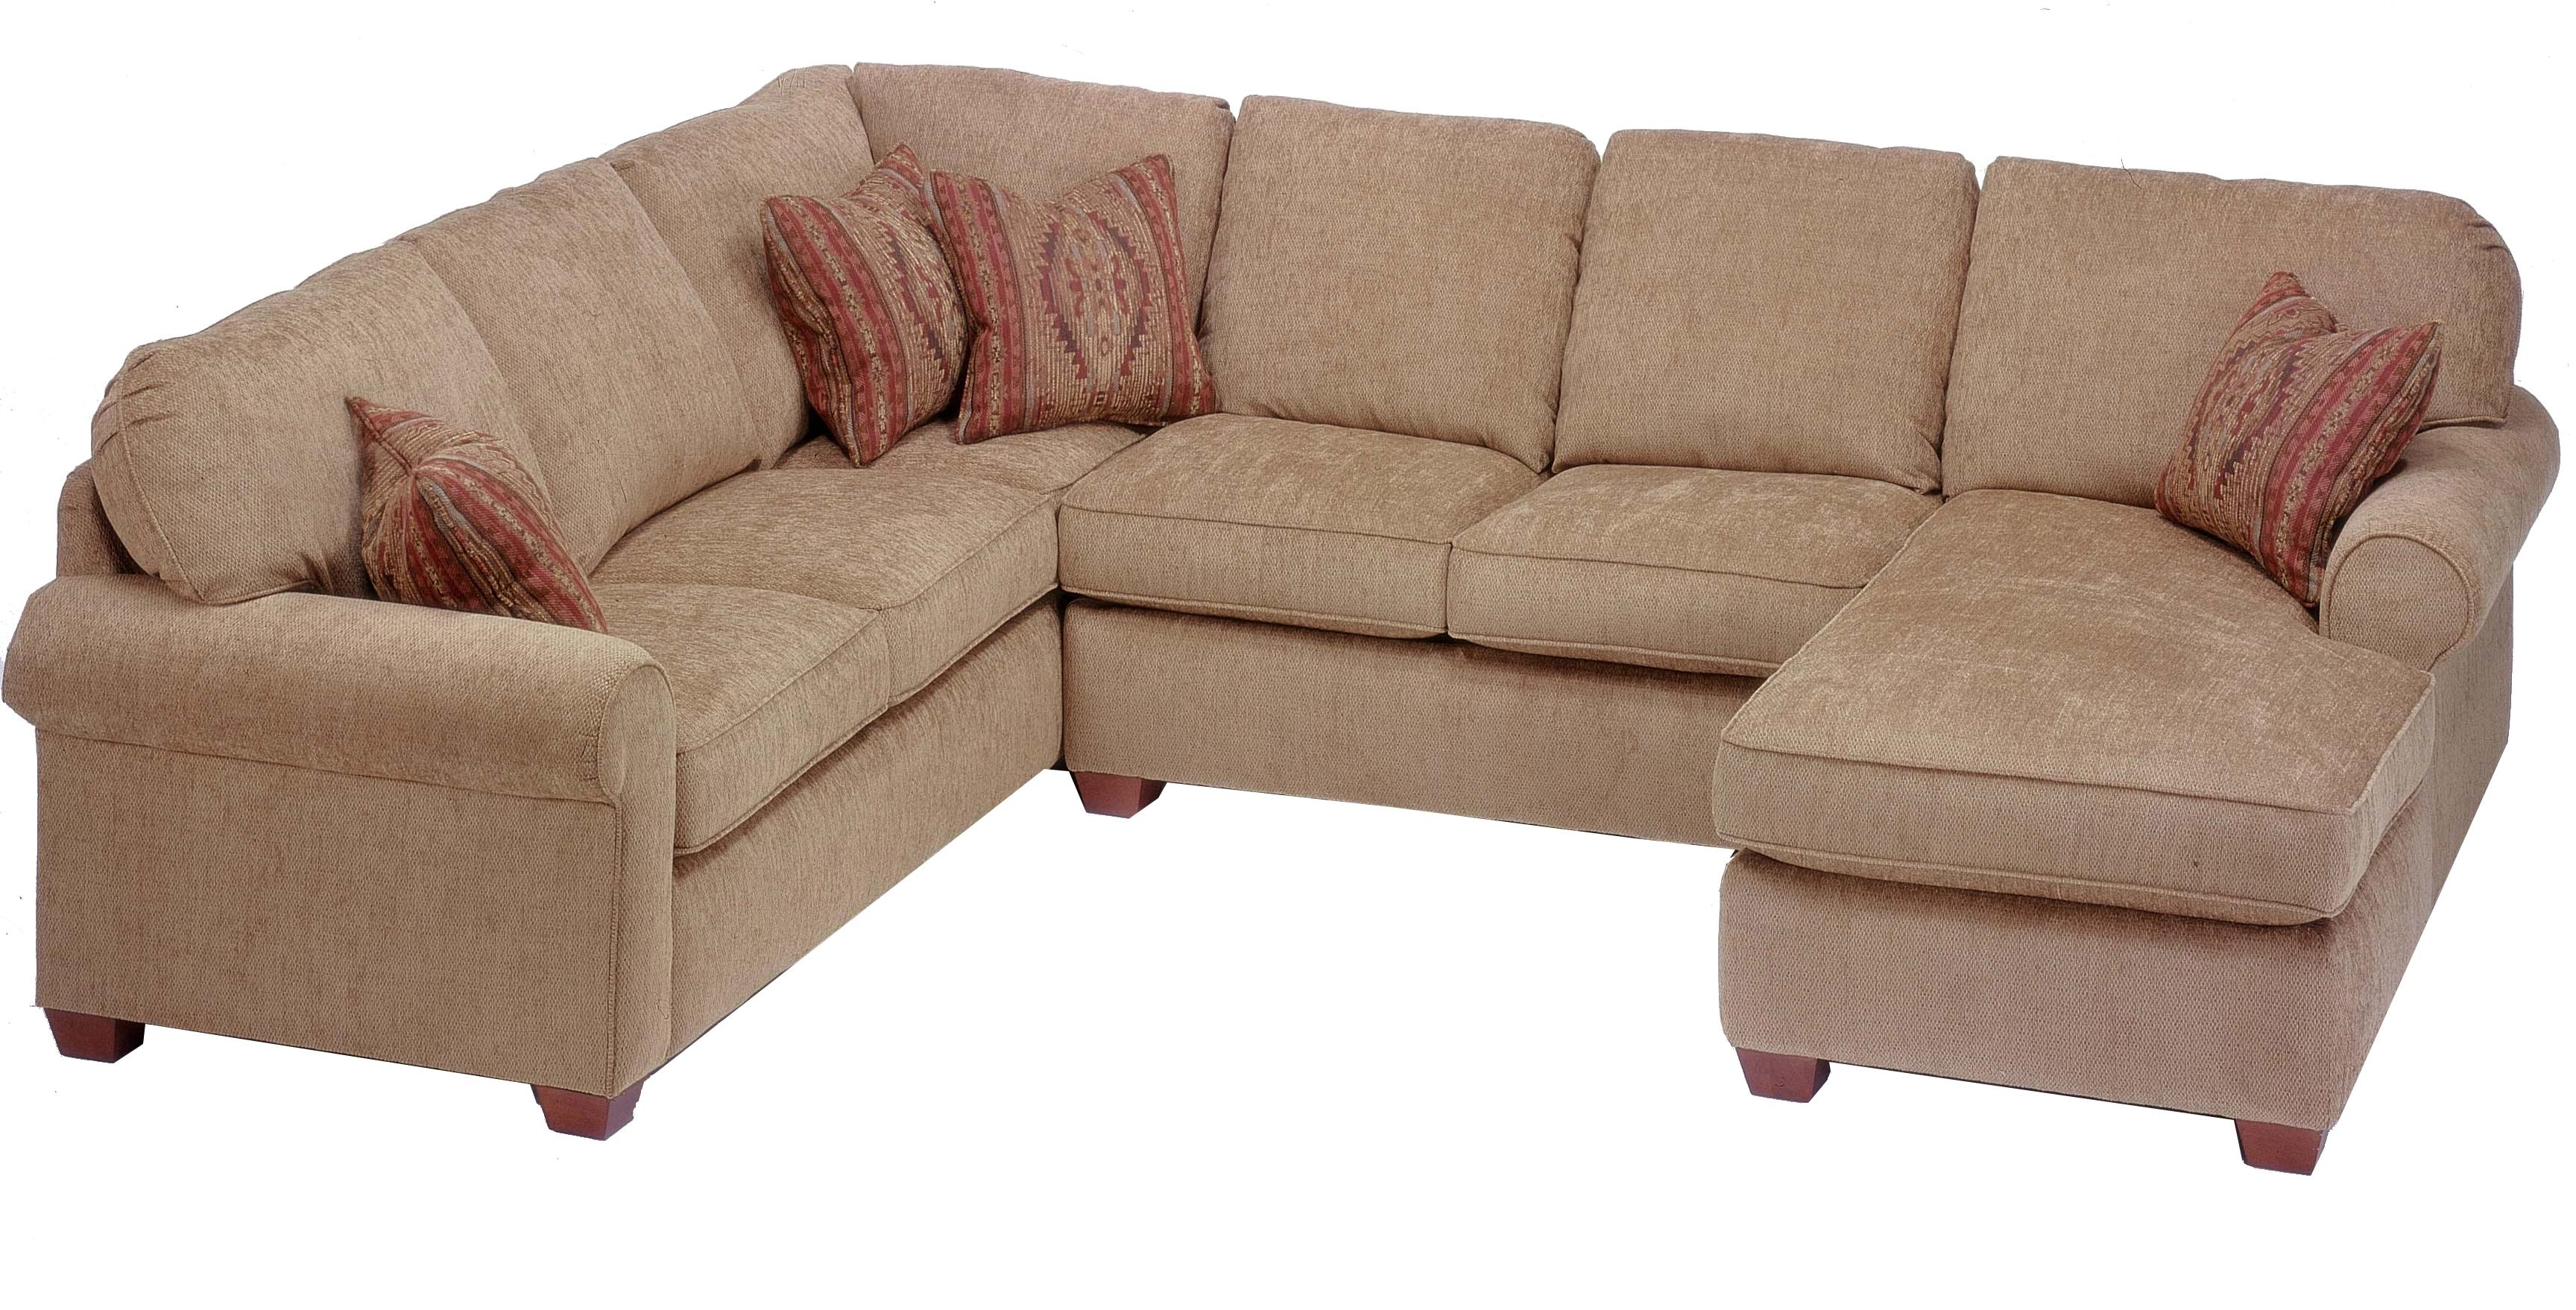 Flexsteel Thornton 3 Piece Sectional With Chaise – Ahfa – Sofa Throughout Latest Visalia Ca Sectional Sofas (View 4 of 15)